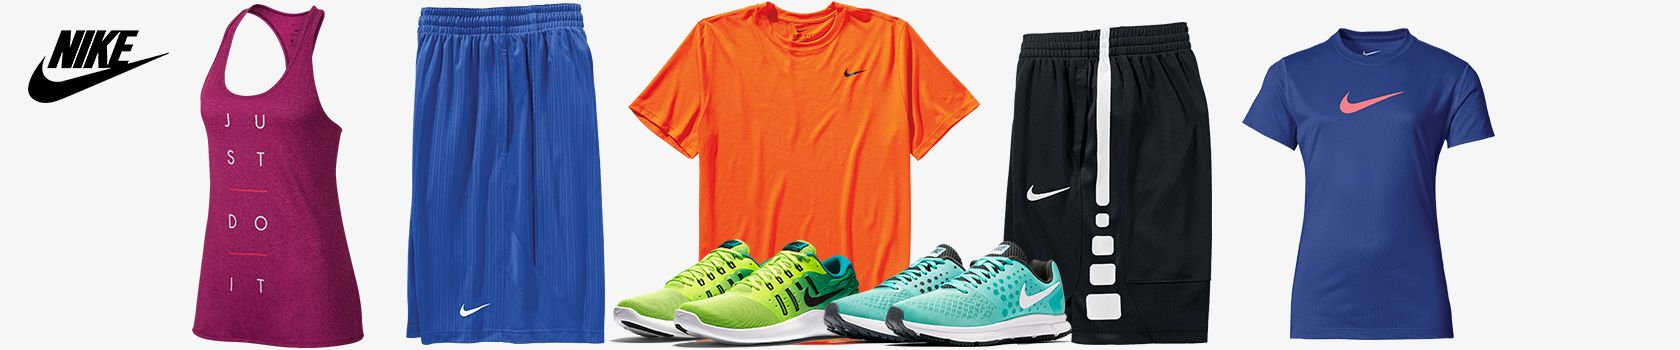 Shop 25% Off Select Nike